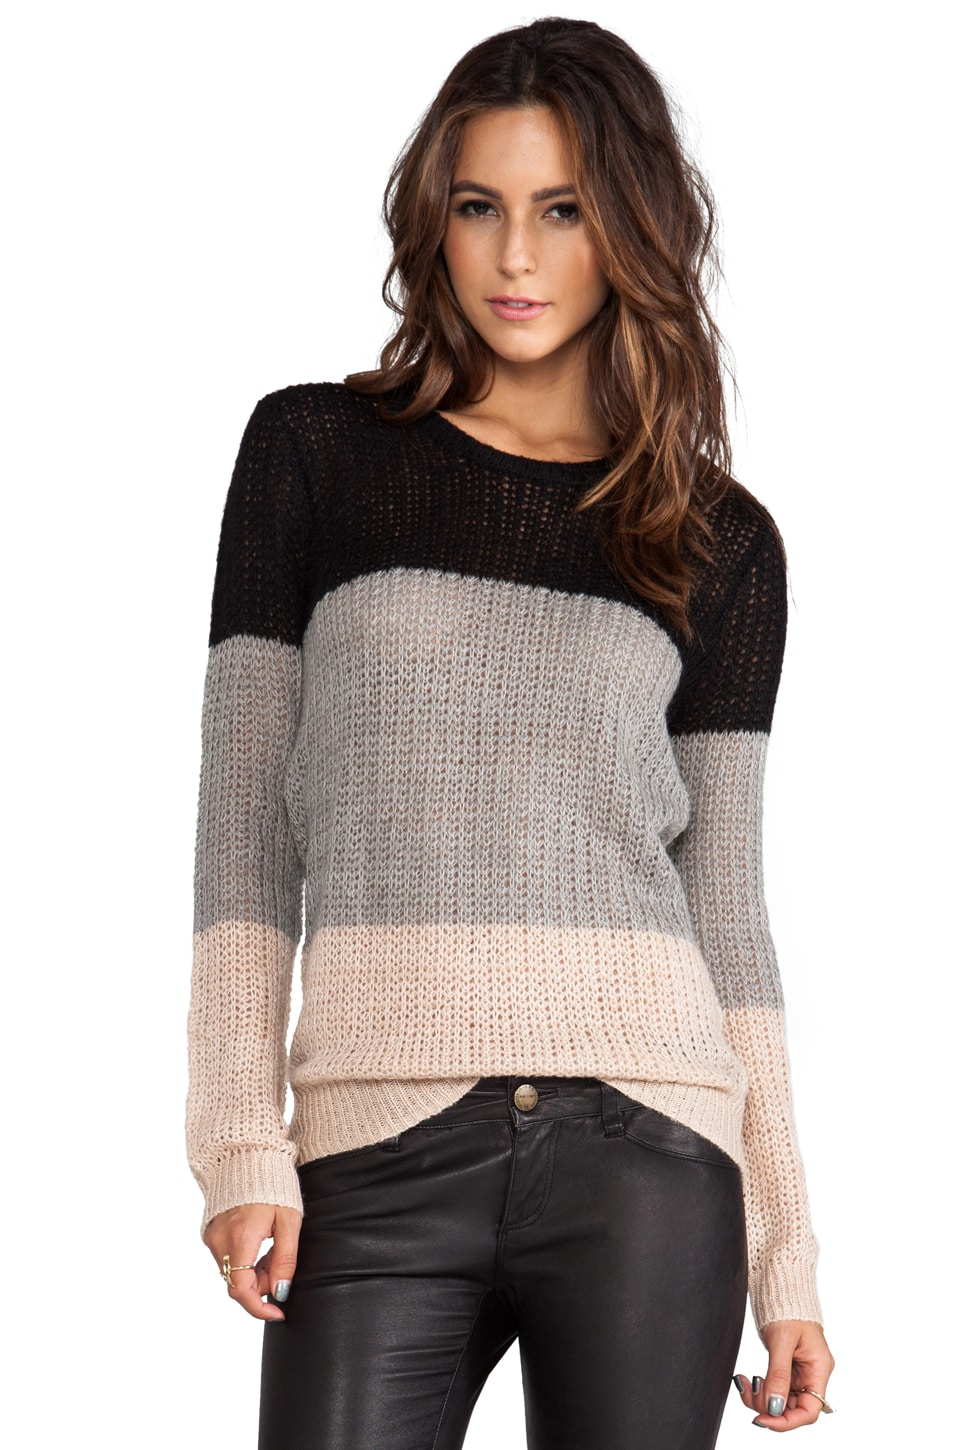 DEREK LAM 10 CROSBY Crew Neck Sweater in Grey/Nude/Black